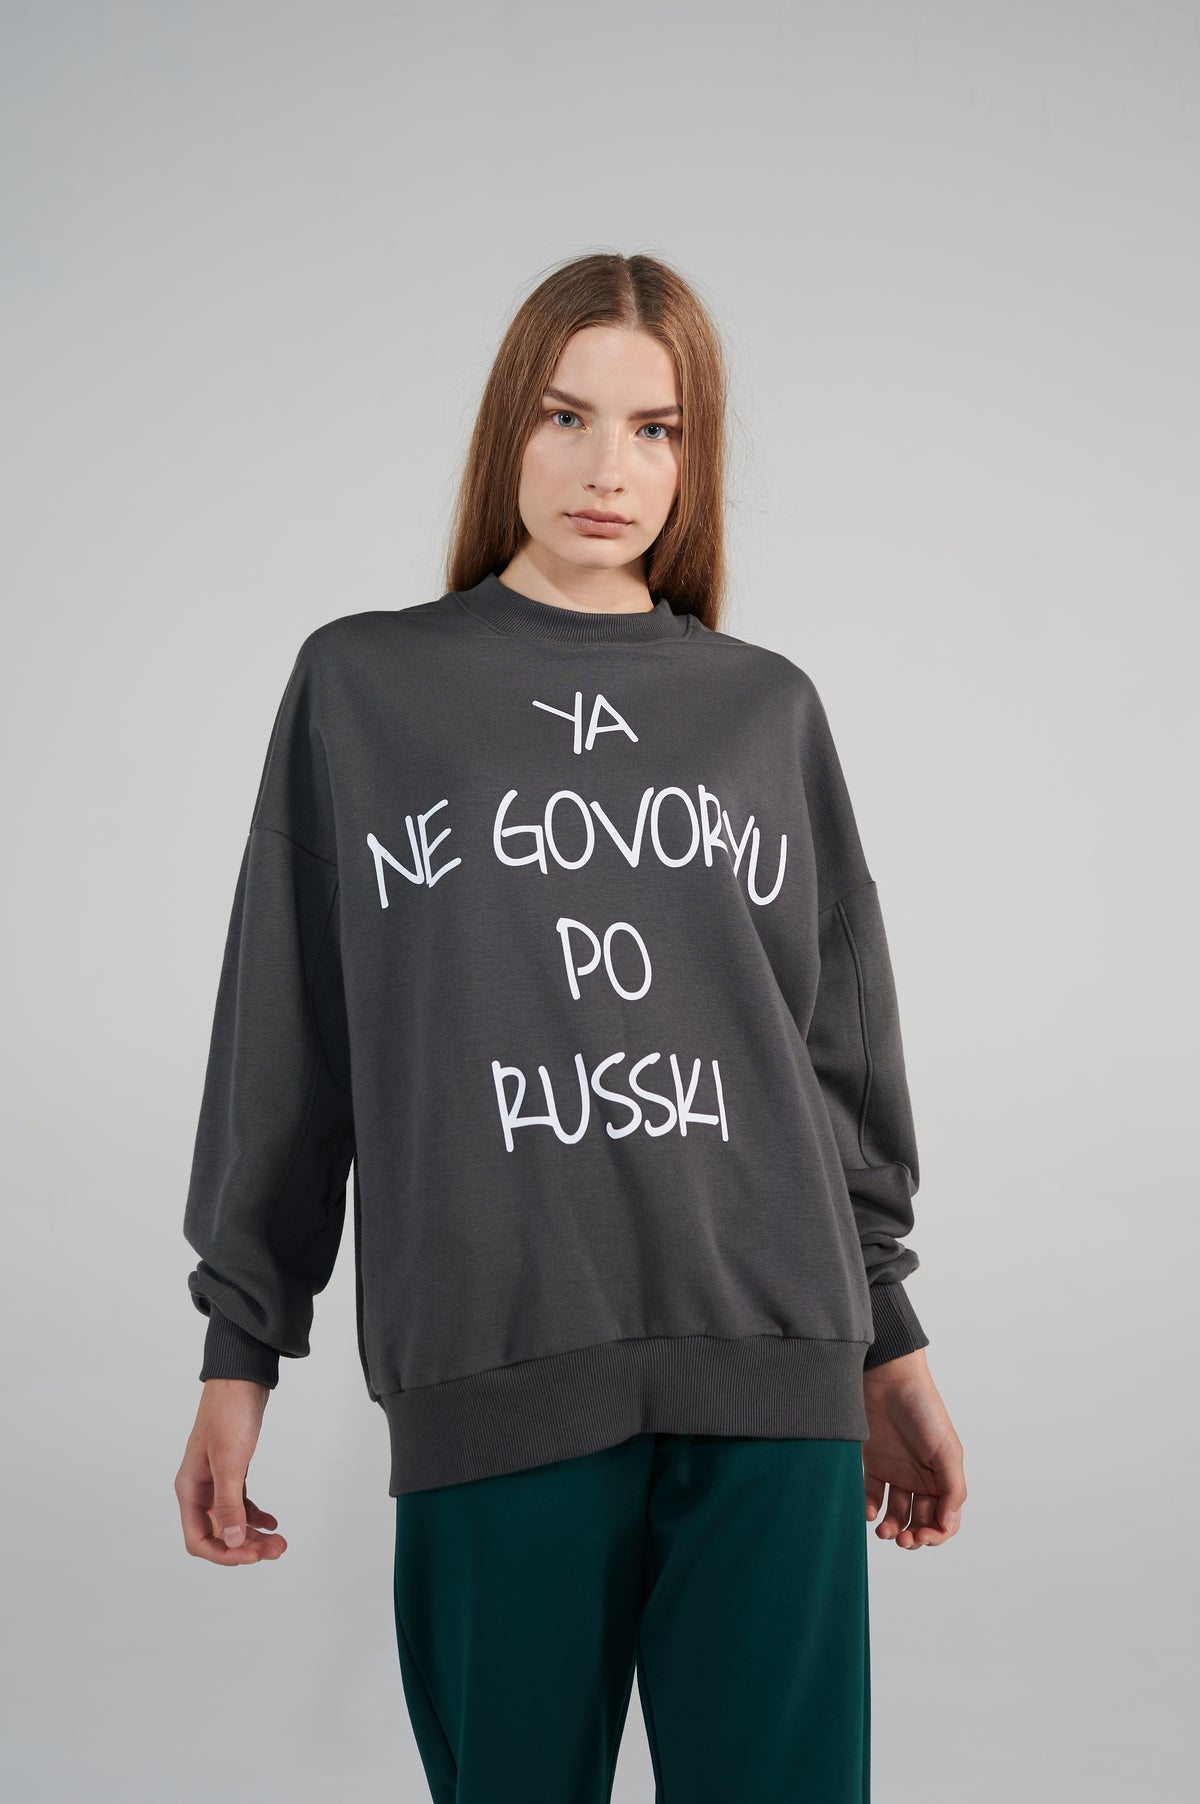 le-slap-oversize-sweater-ya-negovoryu-po-russki-grey-cotton-lookbook.jpg